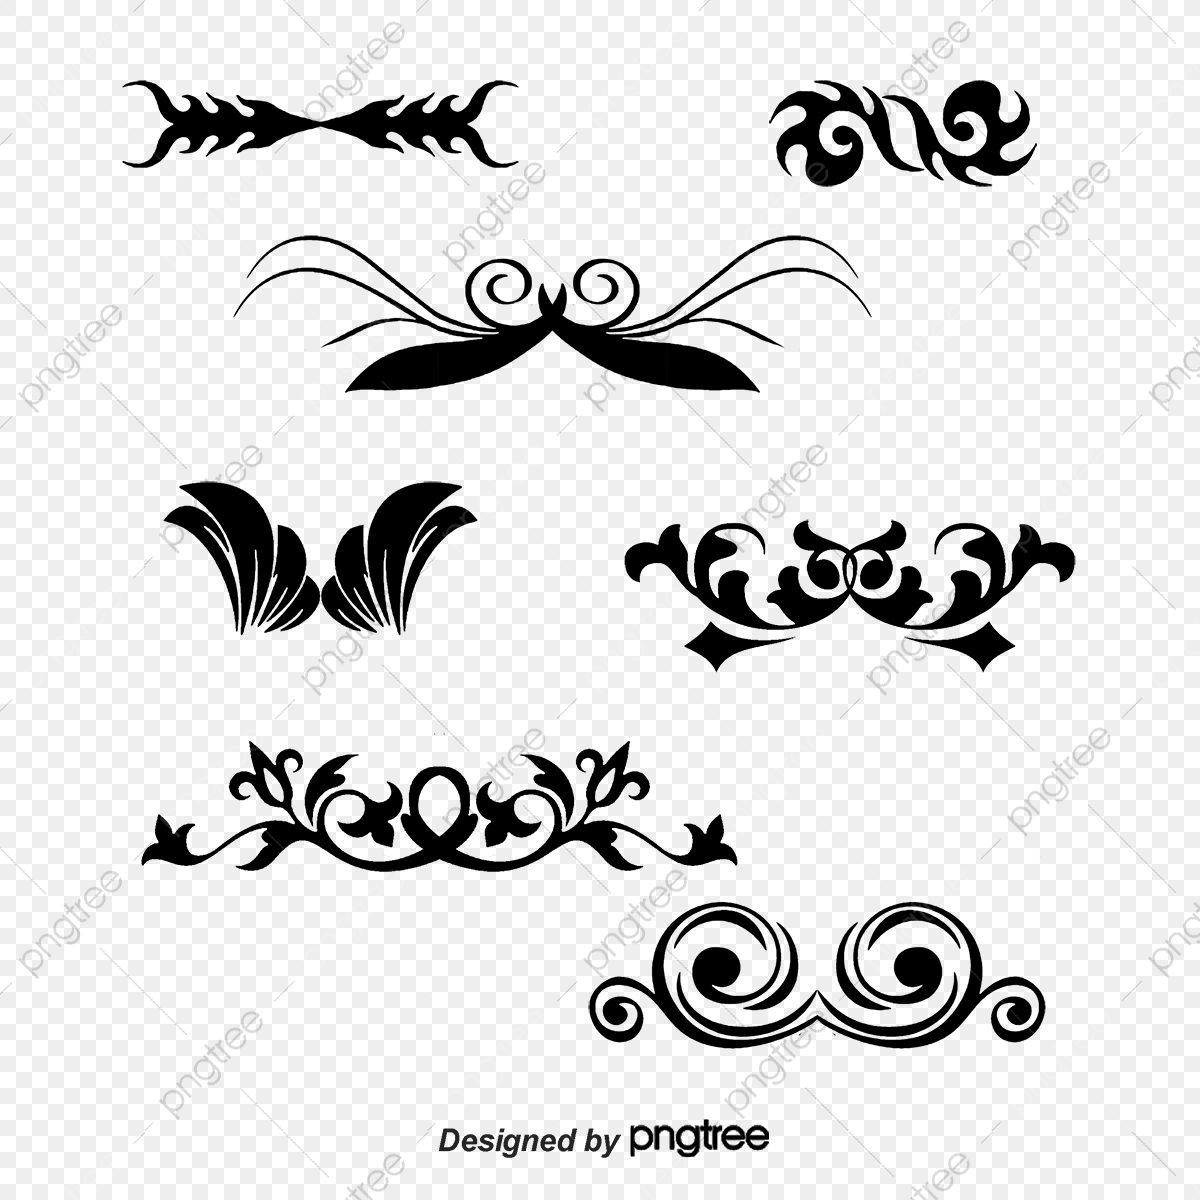 banner freeuse stock Vector vine simple. Hand painted gray pattern